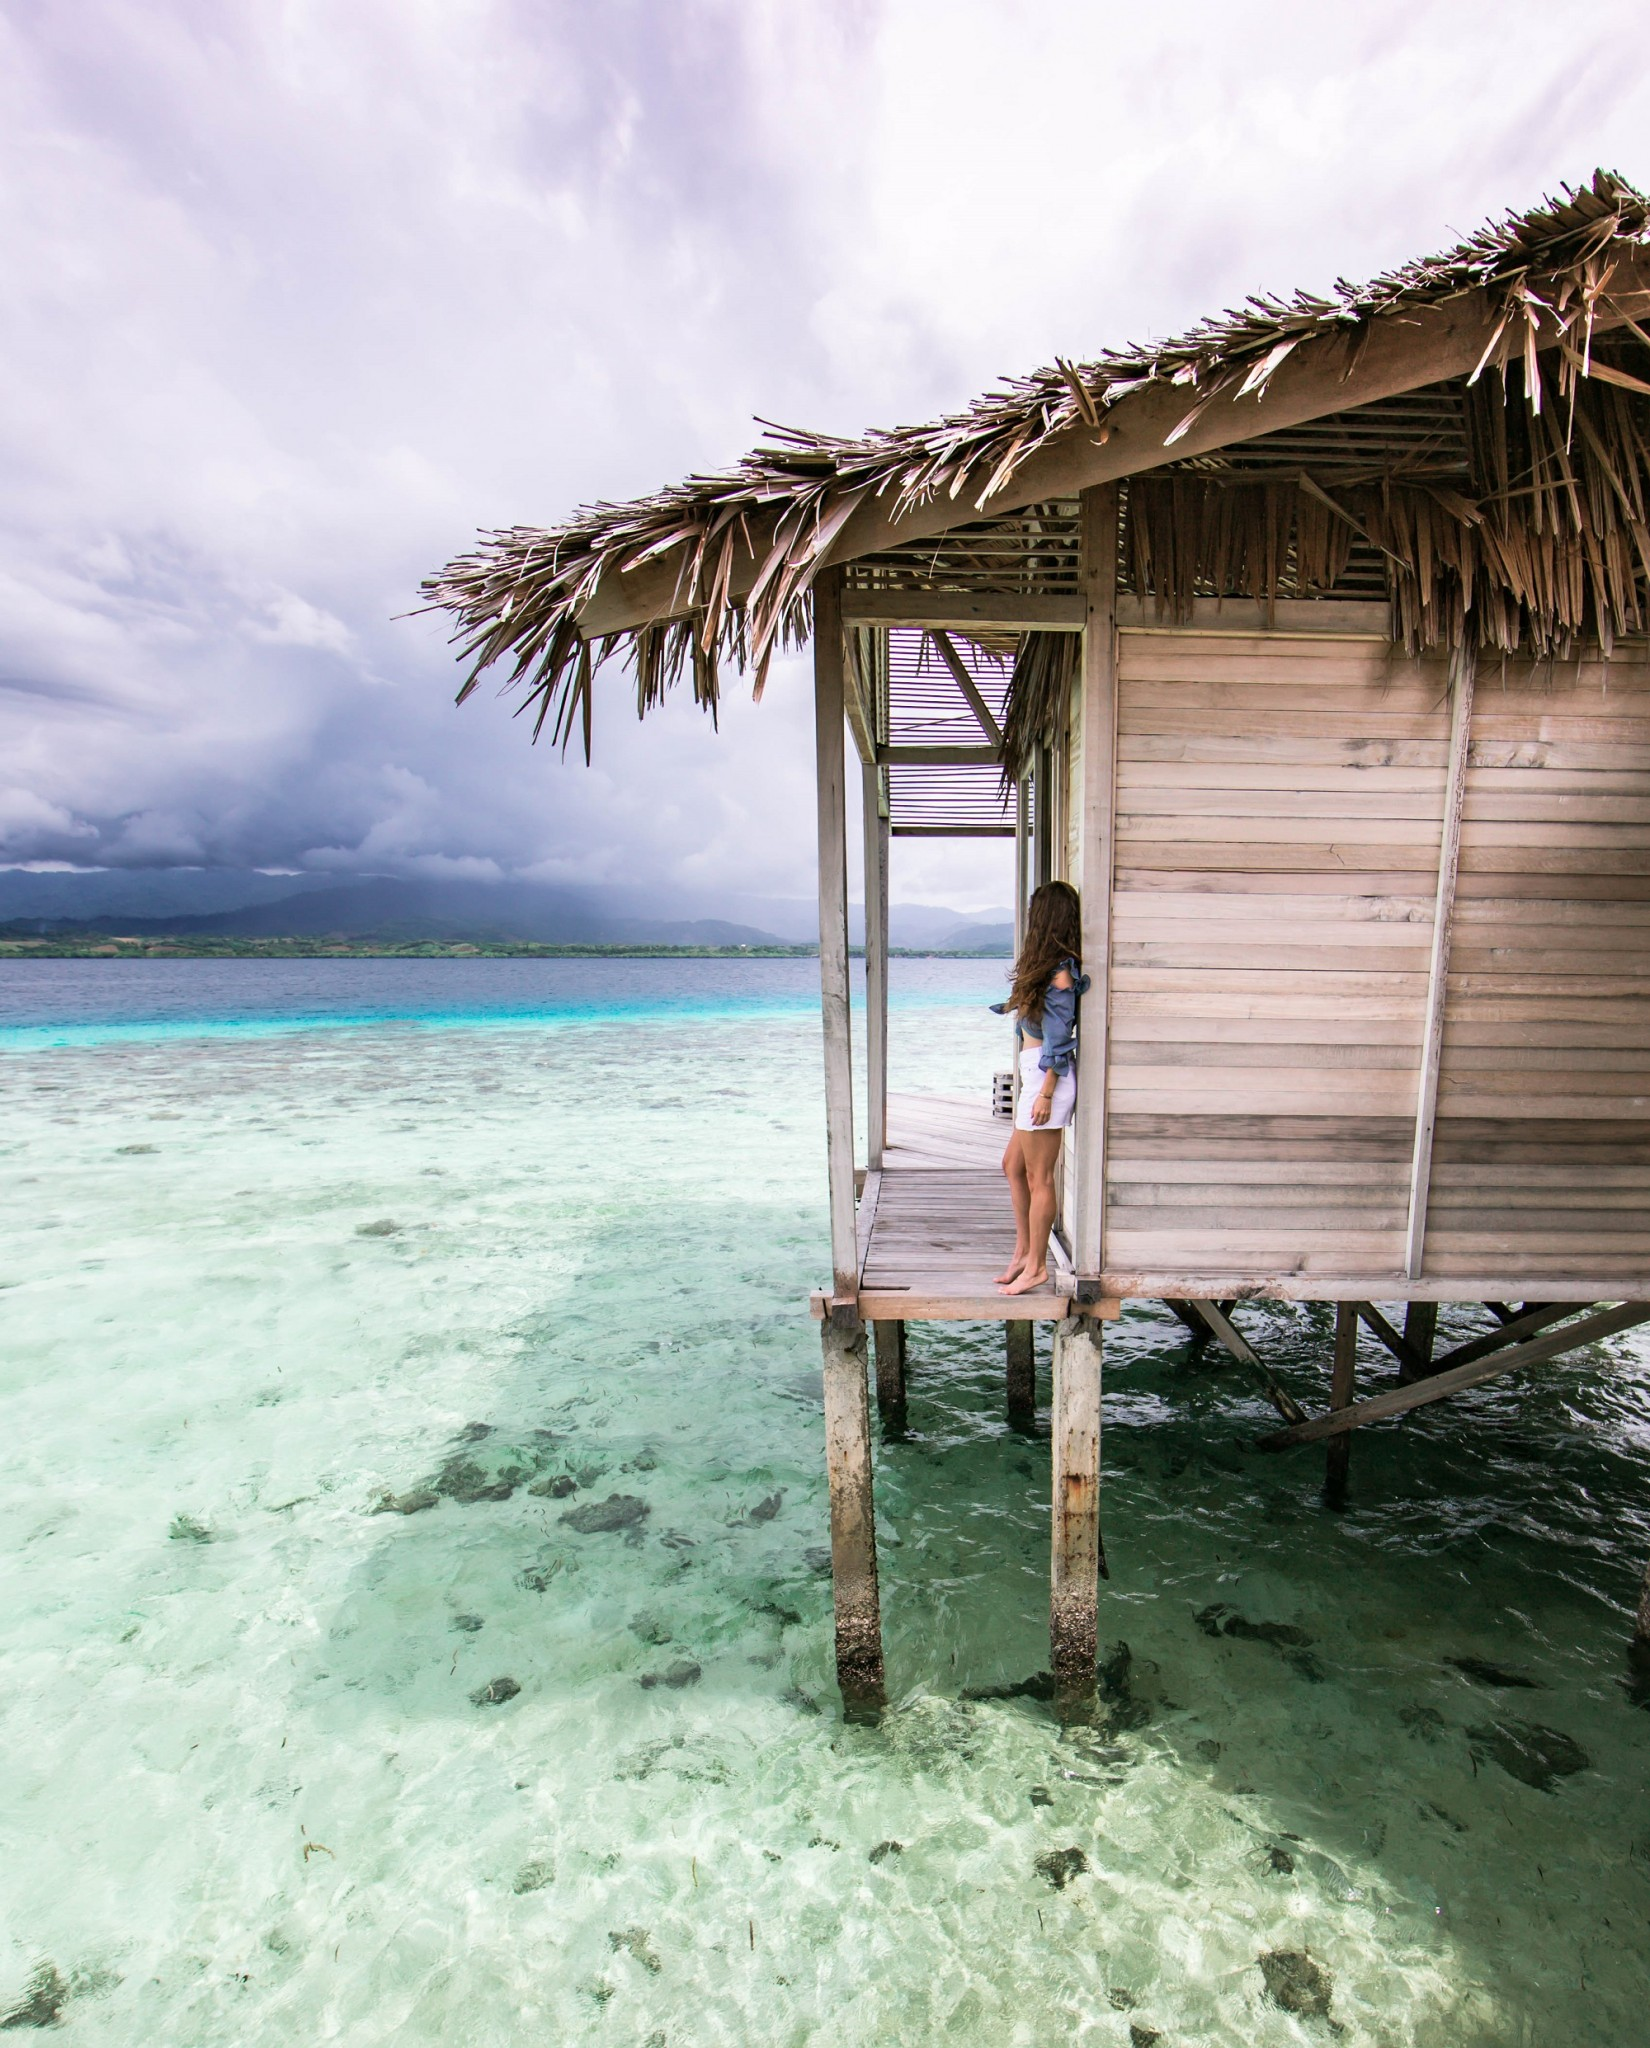 Island Resort: 10 Private Island Resorts To Vacation Like A Star